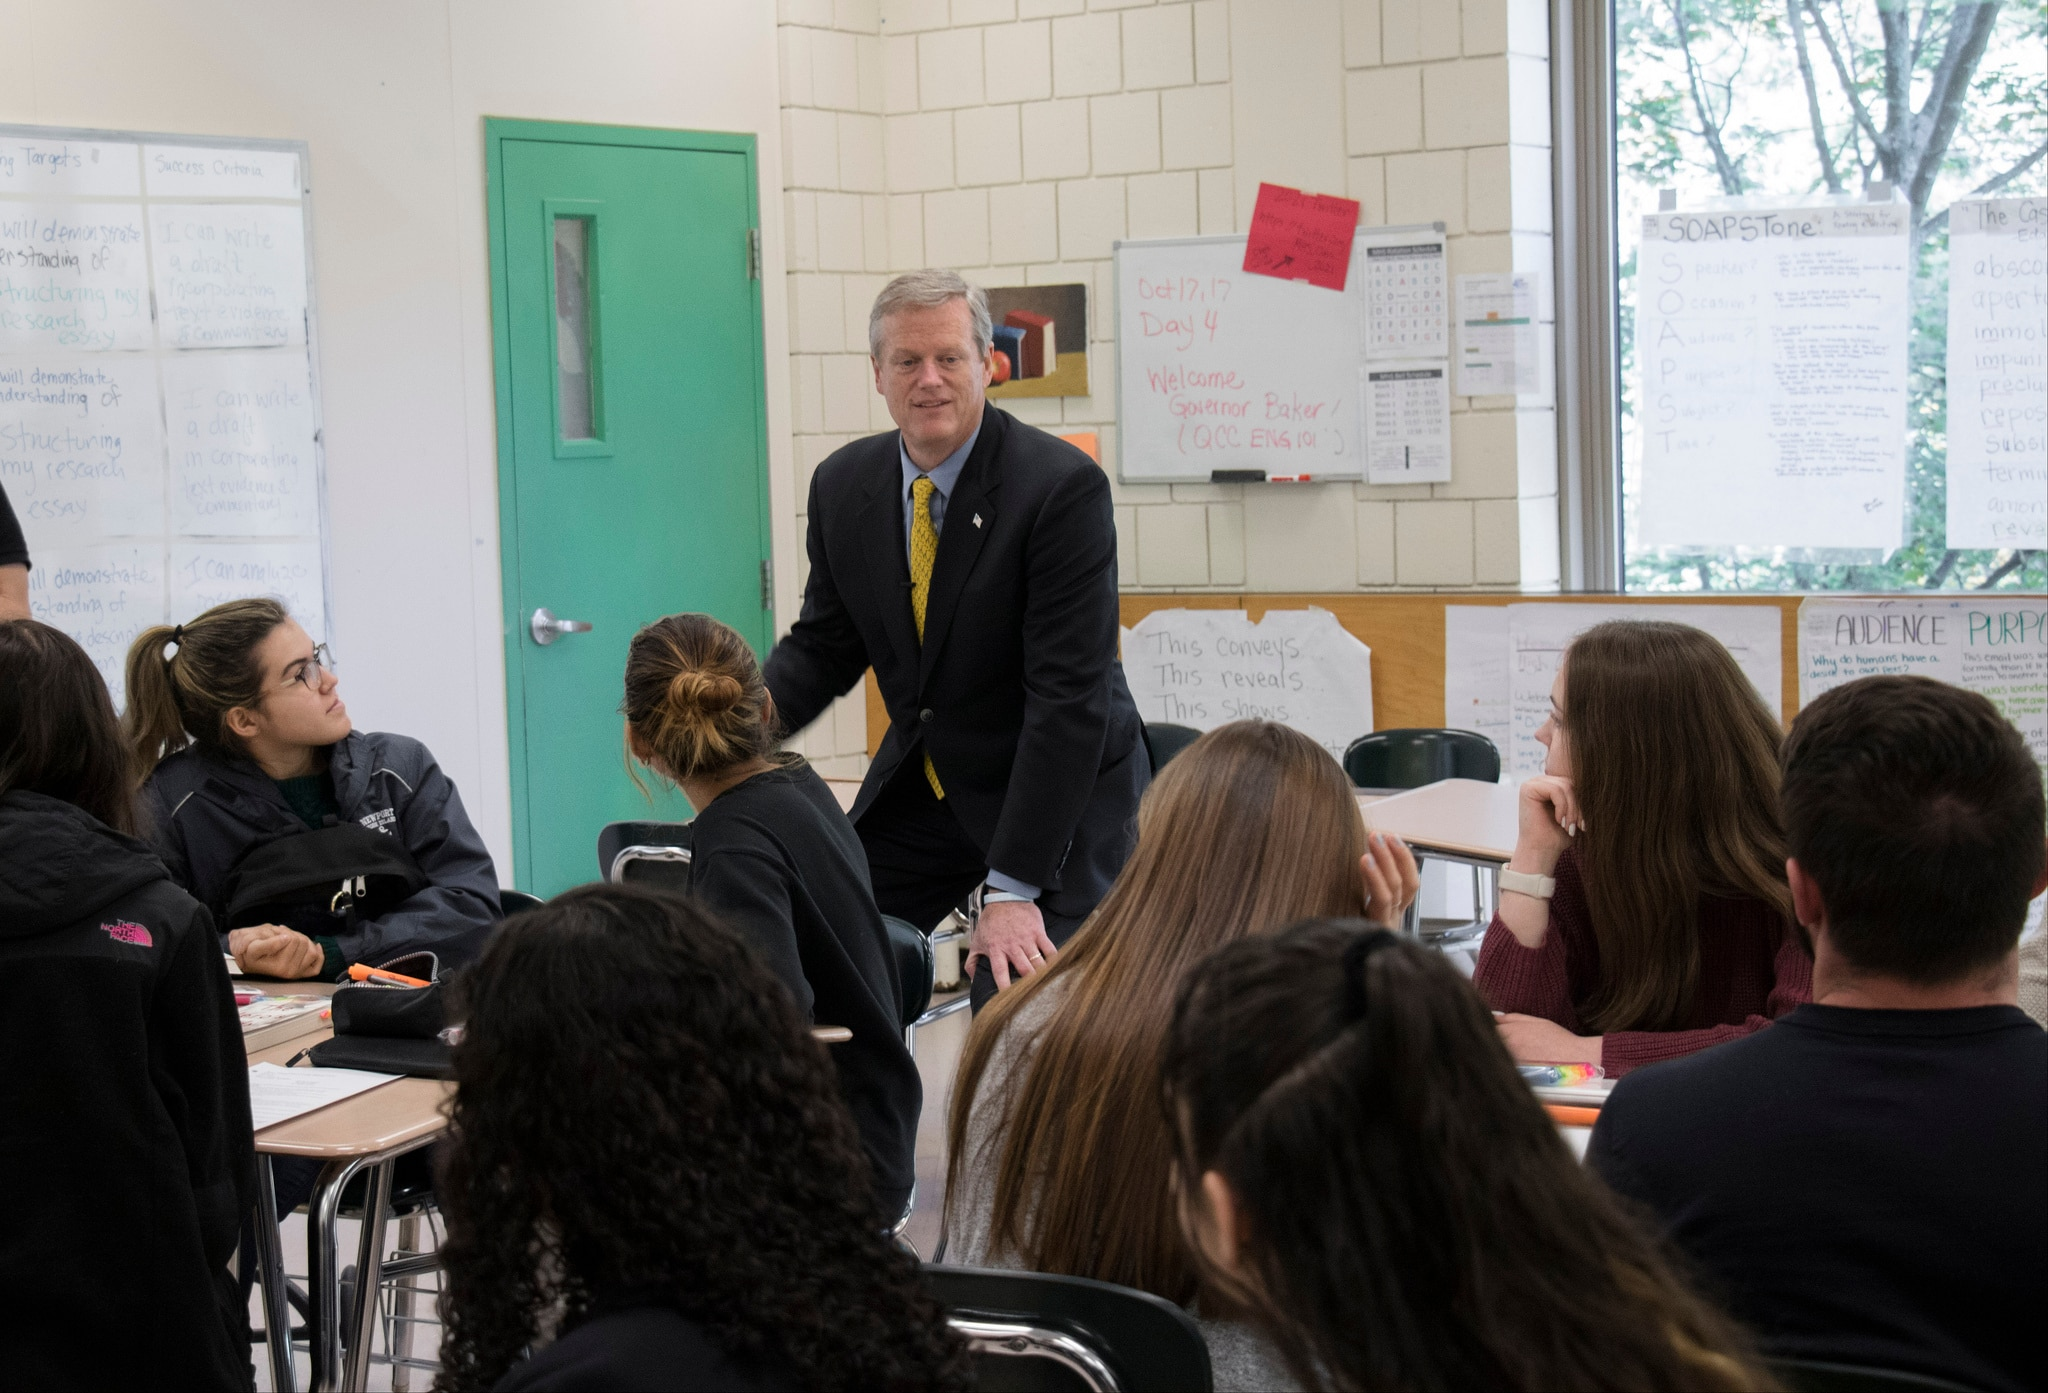 Governor Baker speaks to students at Marlborough High School.